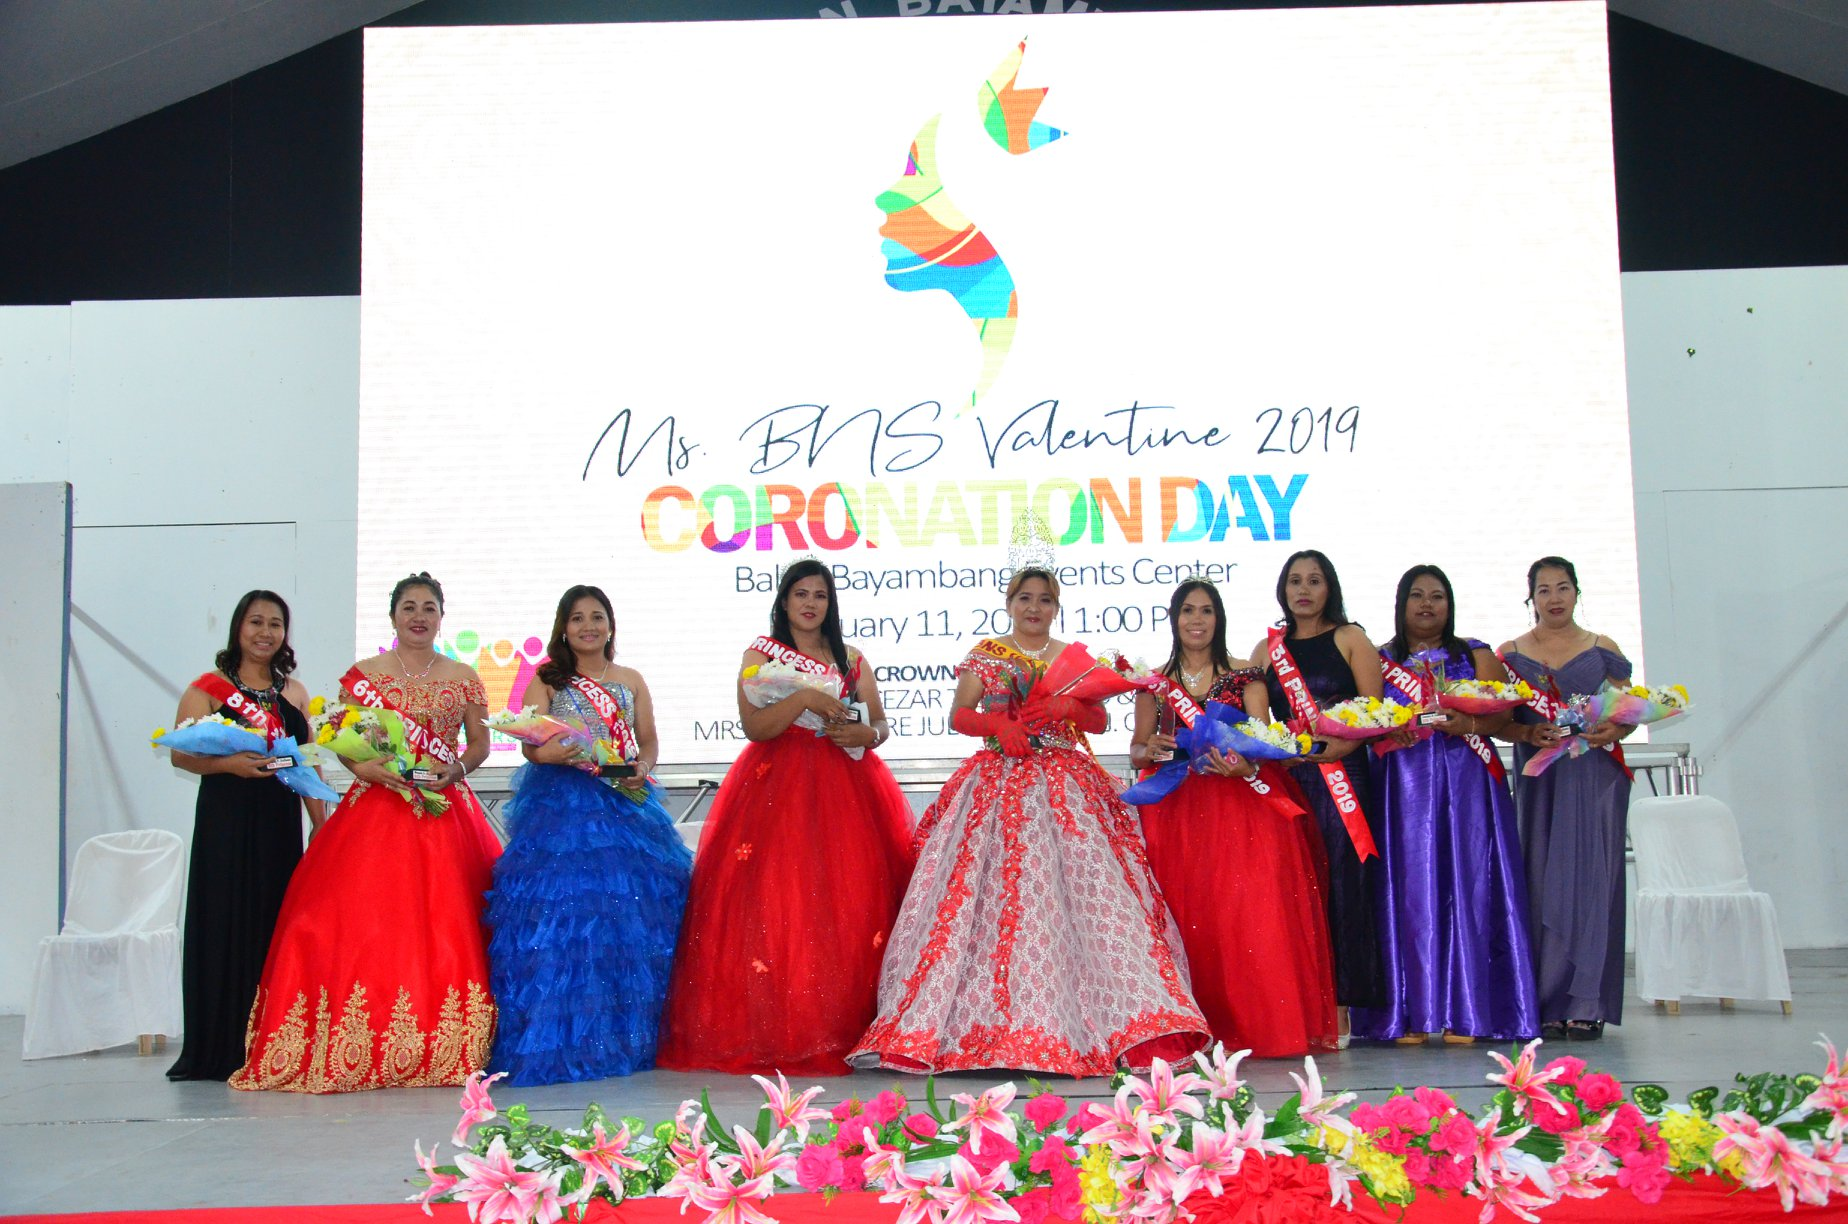 Ms. BNS Valentine 2019 Coronation Day, Ginanap sa Events Center